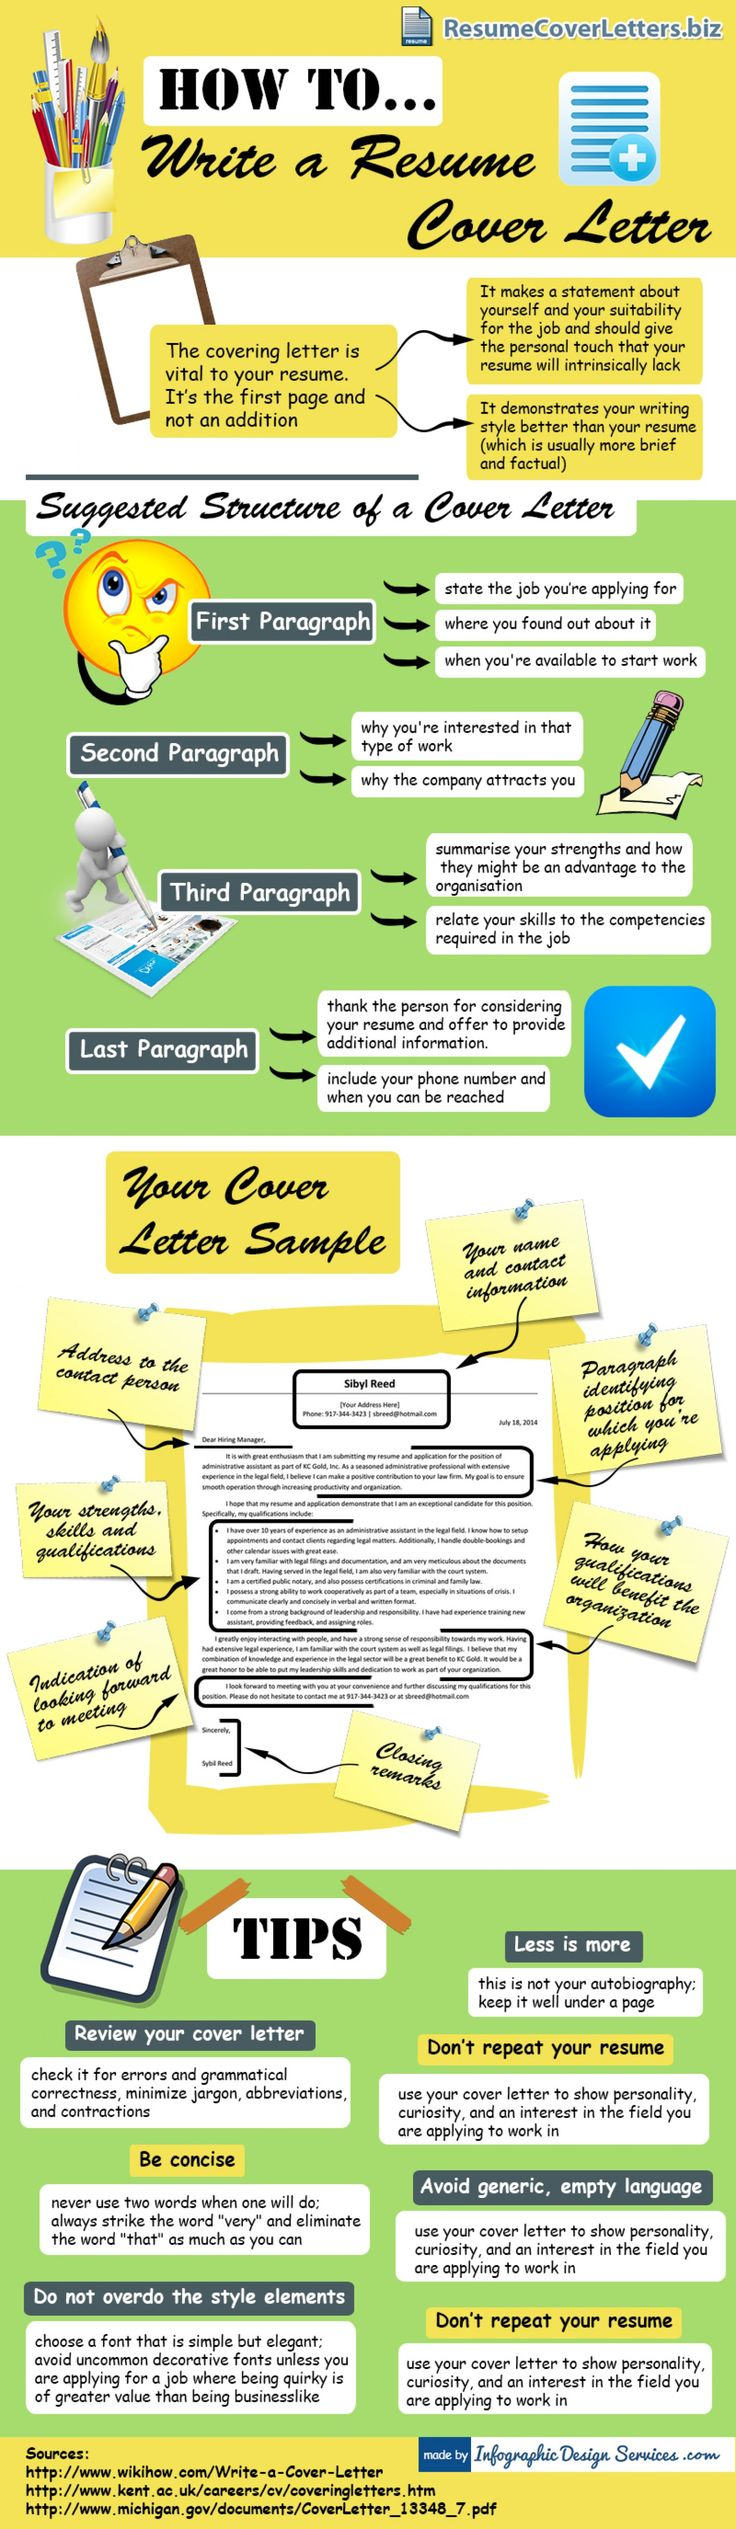 Best 20 cover letters ideas on pinterest cover letter example resume cover letter writing tips infographic mitanshu Gallery